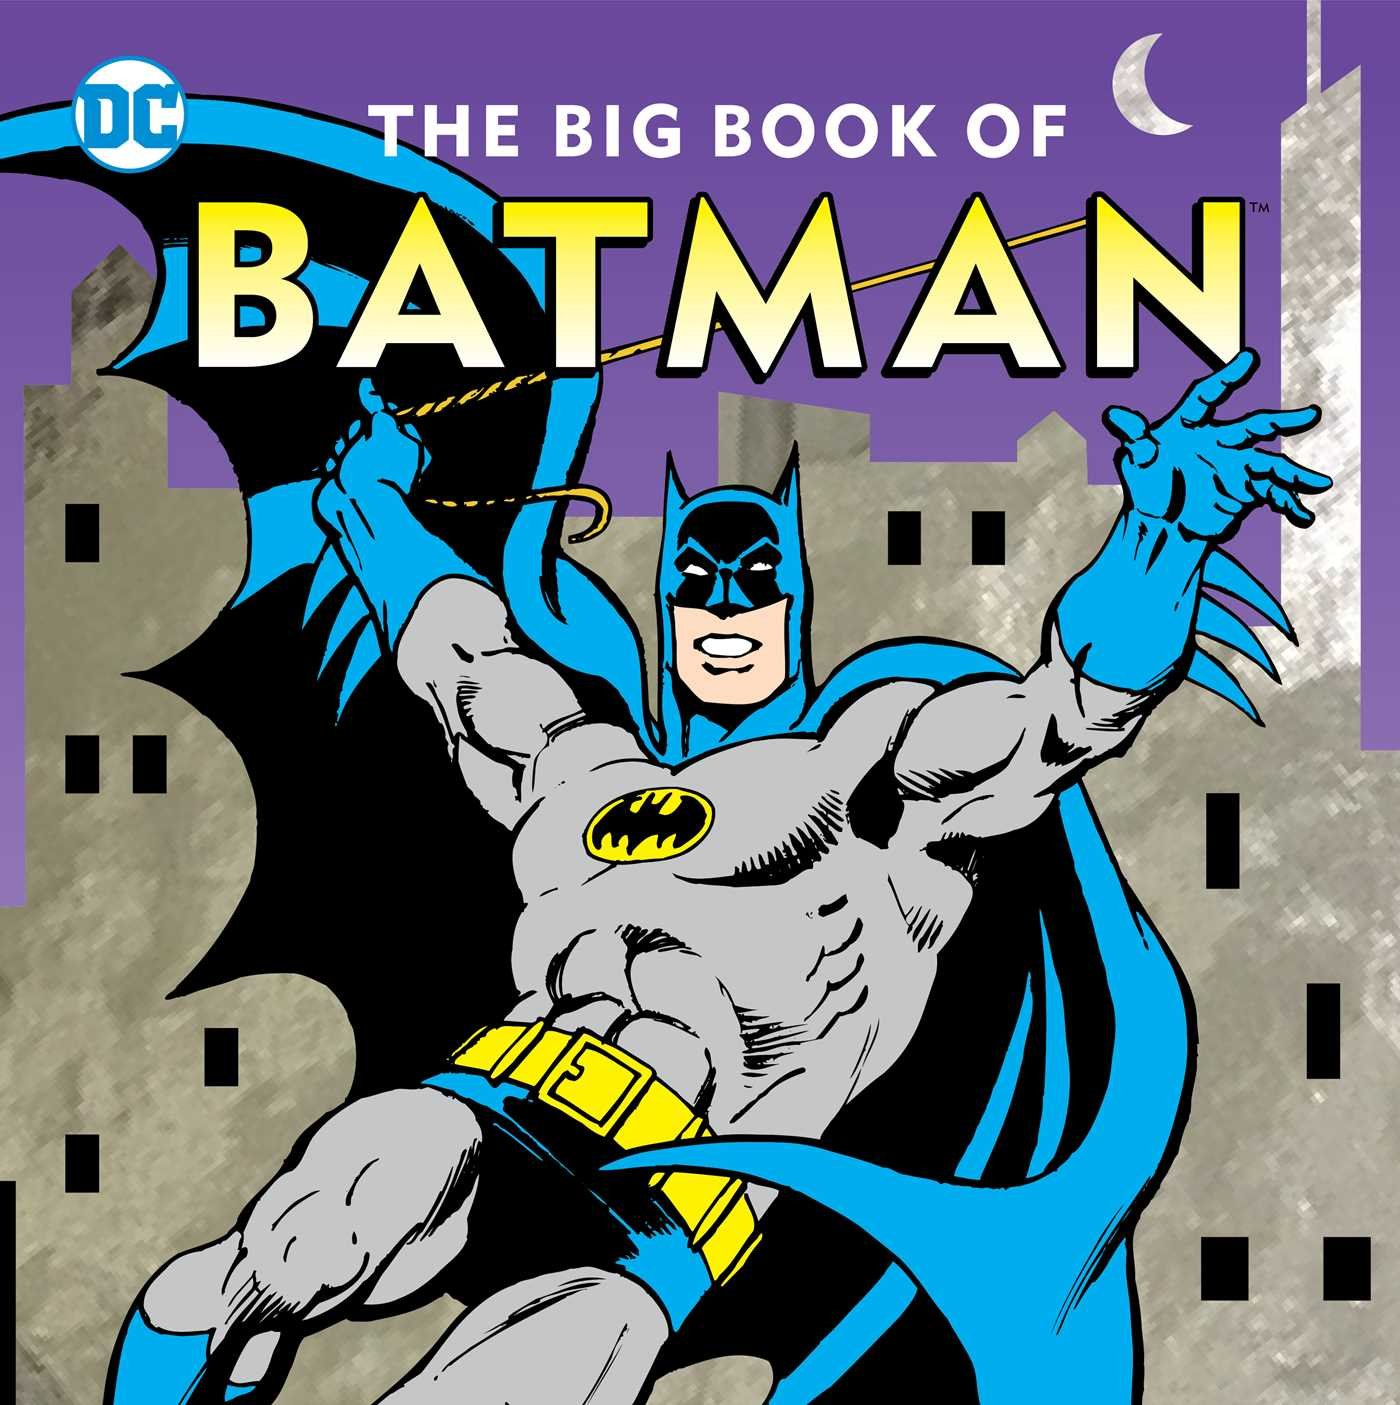 'The Big Book of Batman' is a perfect addition to your kids' bookshelves, and won't leave you bored either